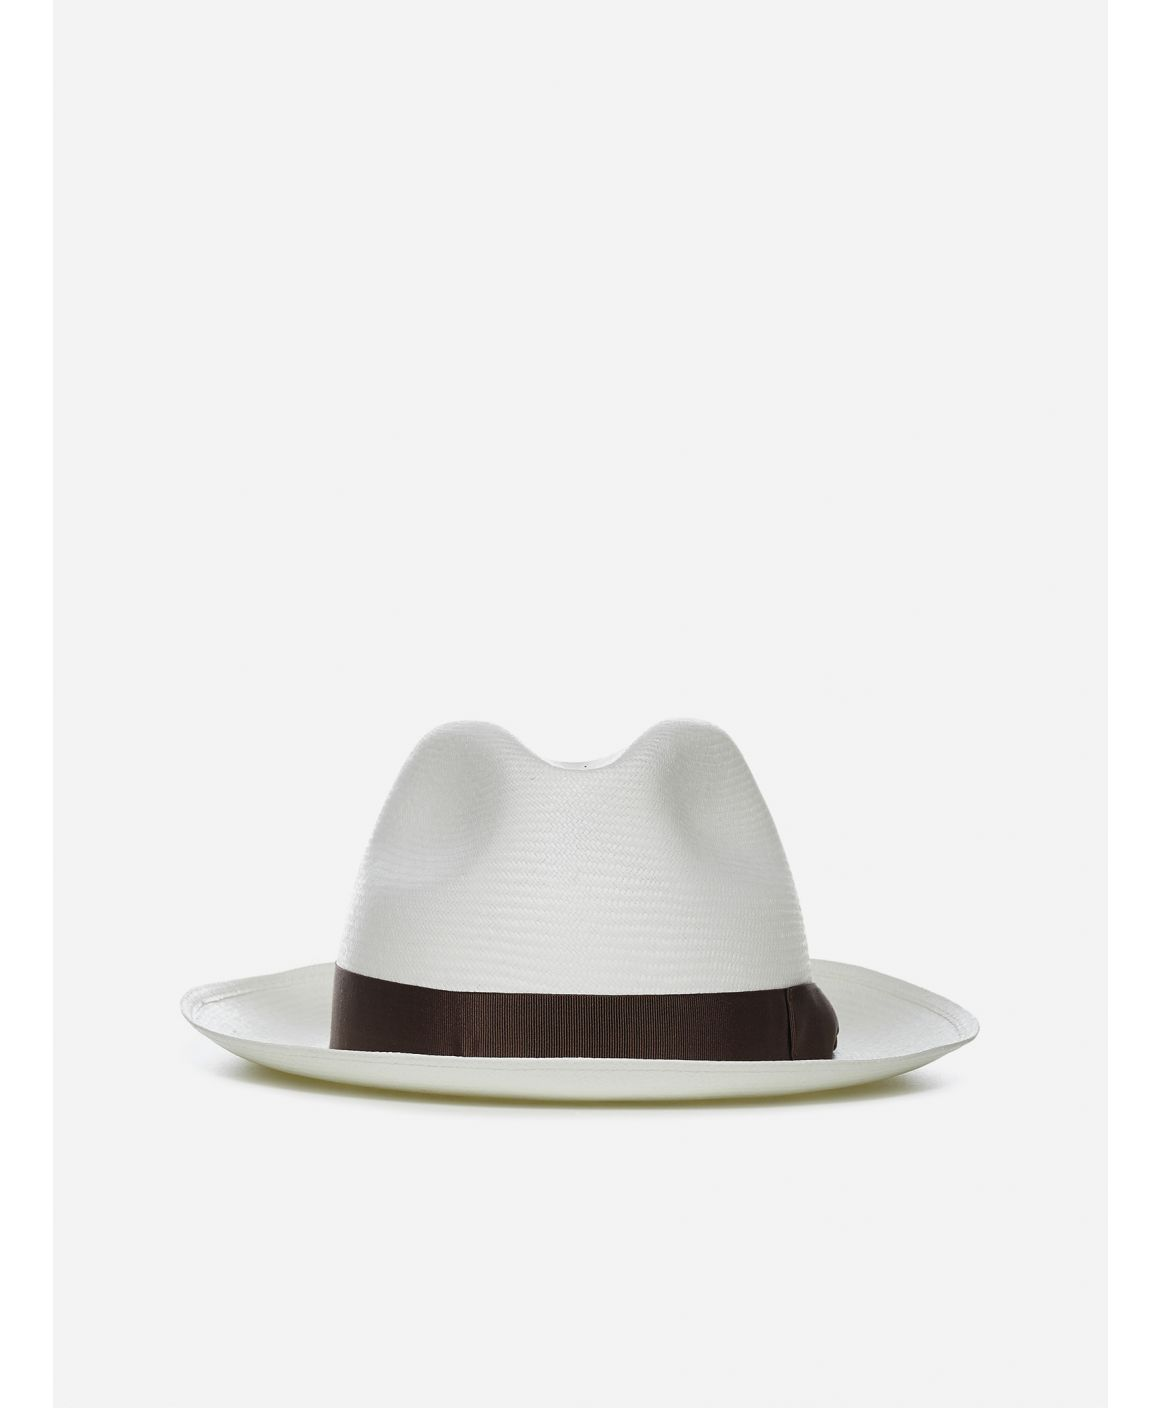 Fine medium brim Panama hat